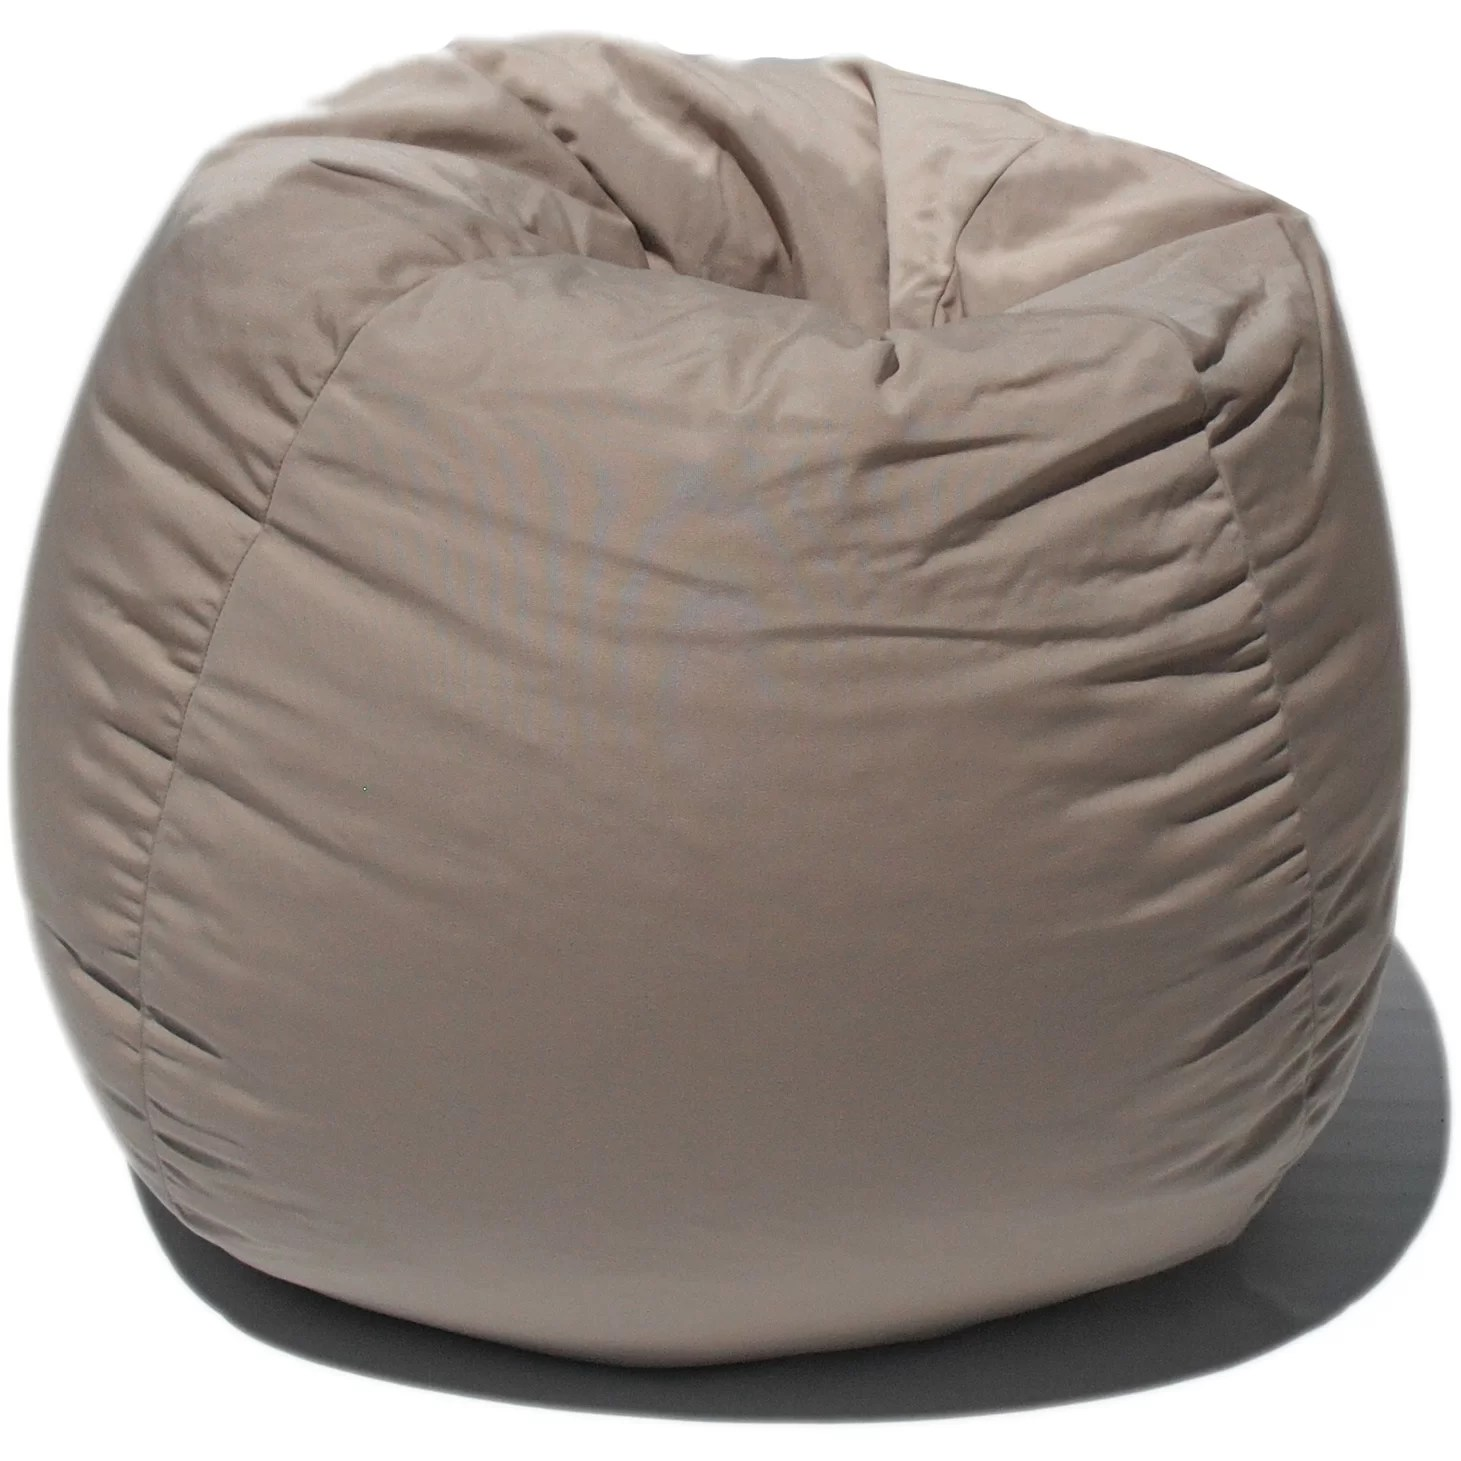 Outdoor Bean Bag Chairs Viv 43 Rae Bean Bag Chair And Reviews Wayfair